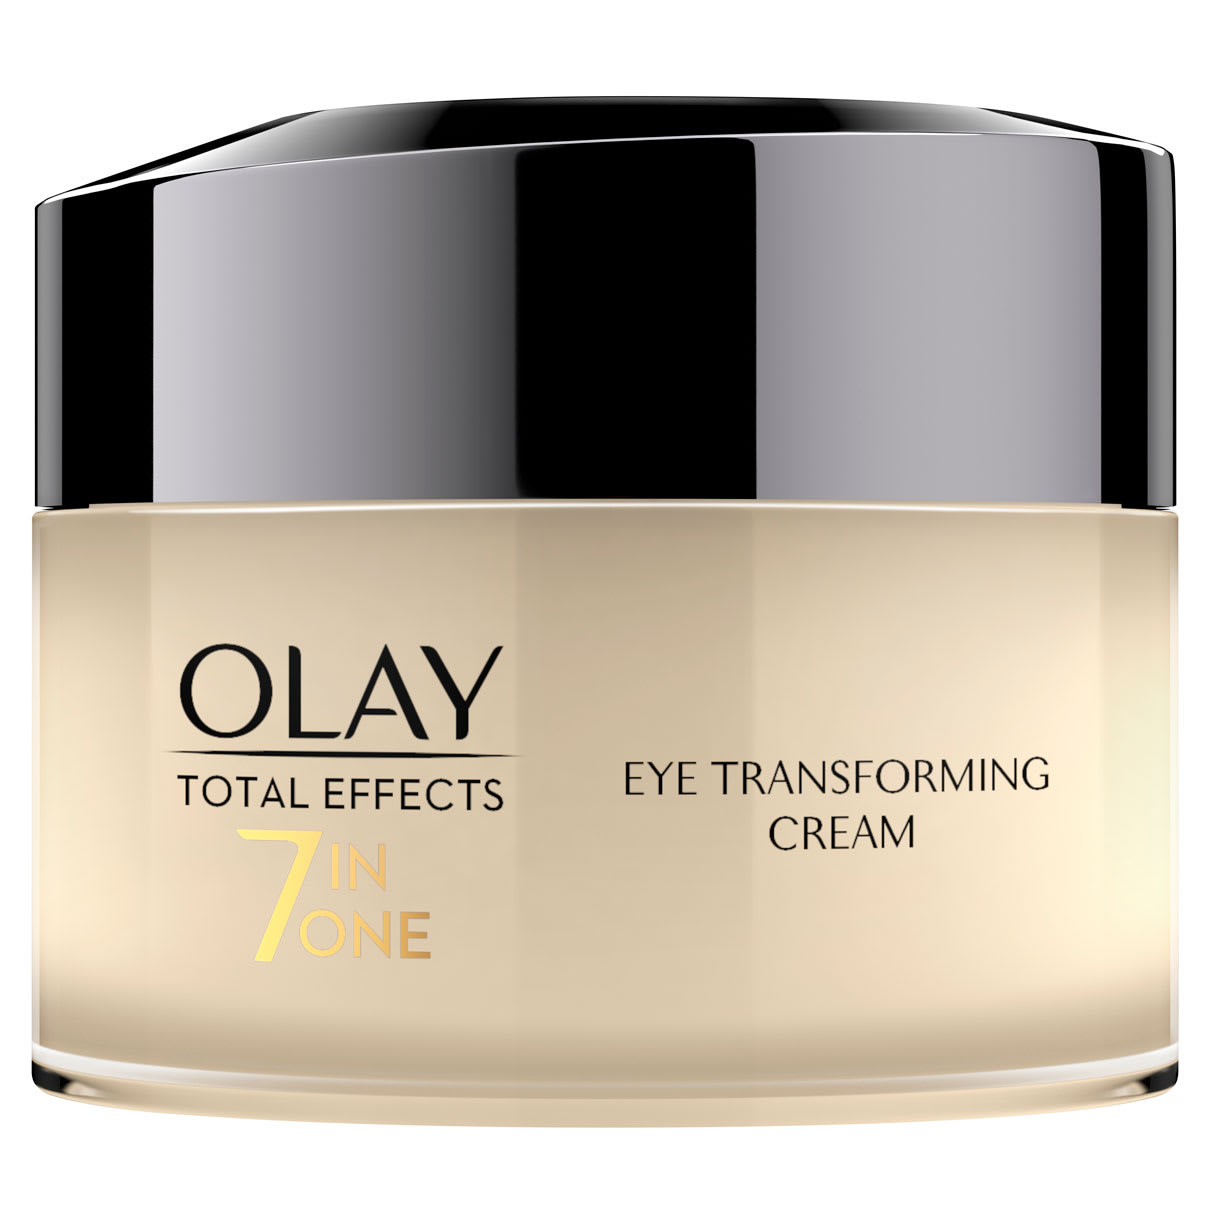 Olay Total Effects 7in1 Moisturiser Eye Transforming Cream 15 ml